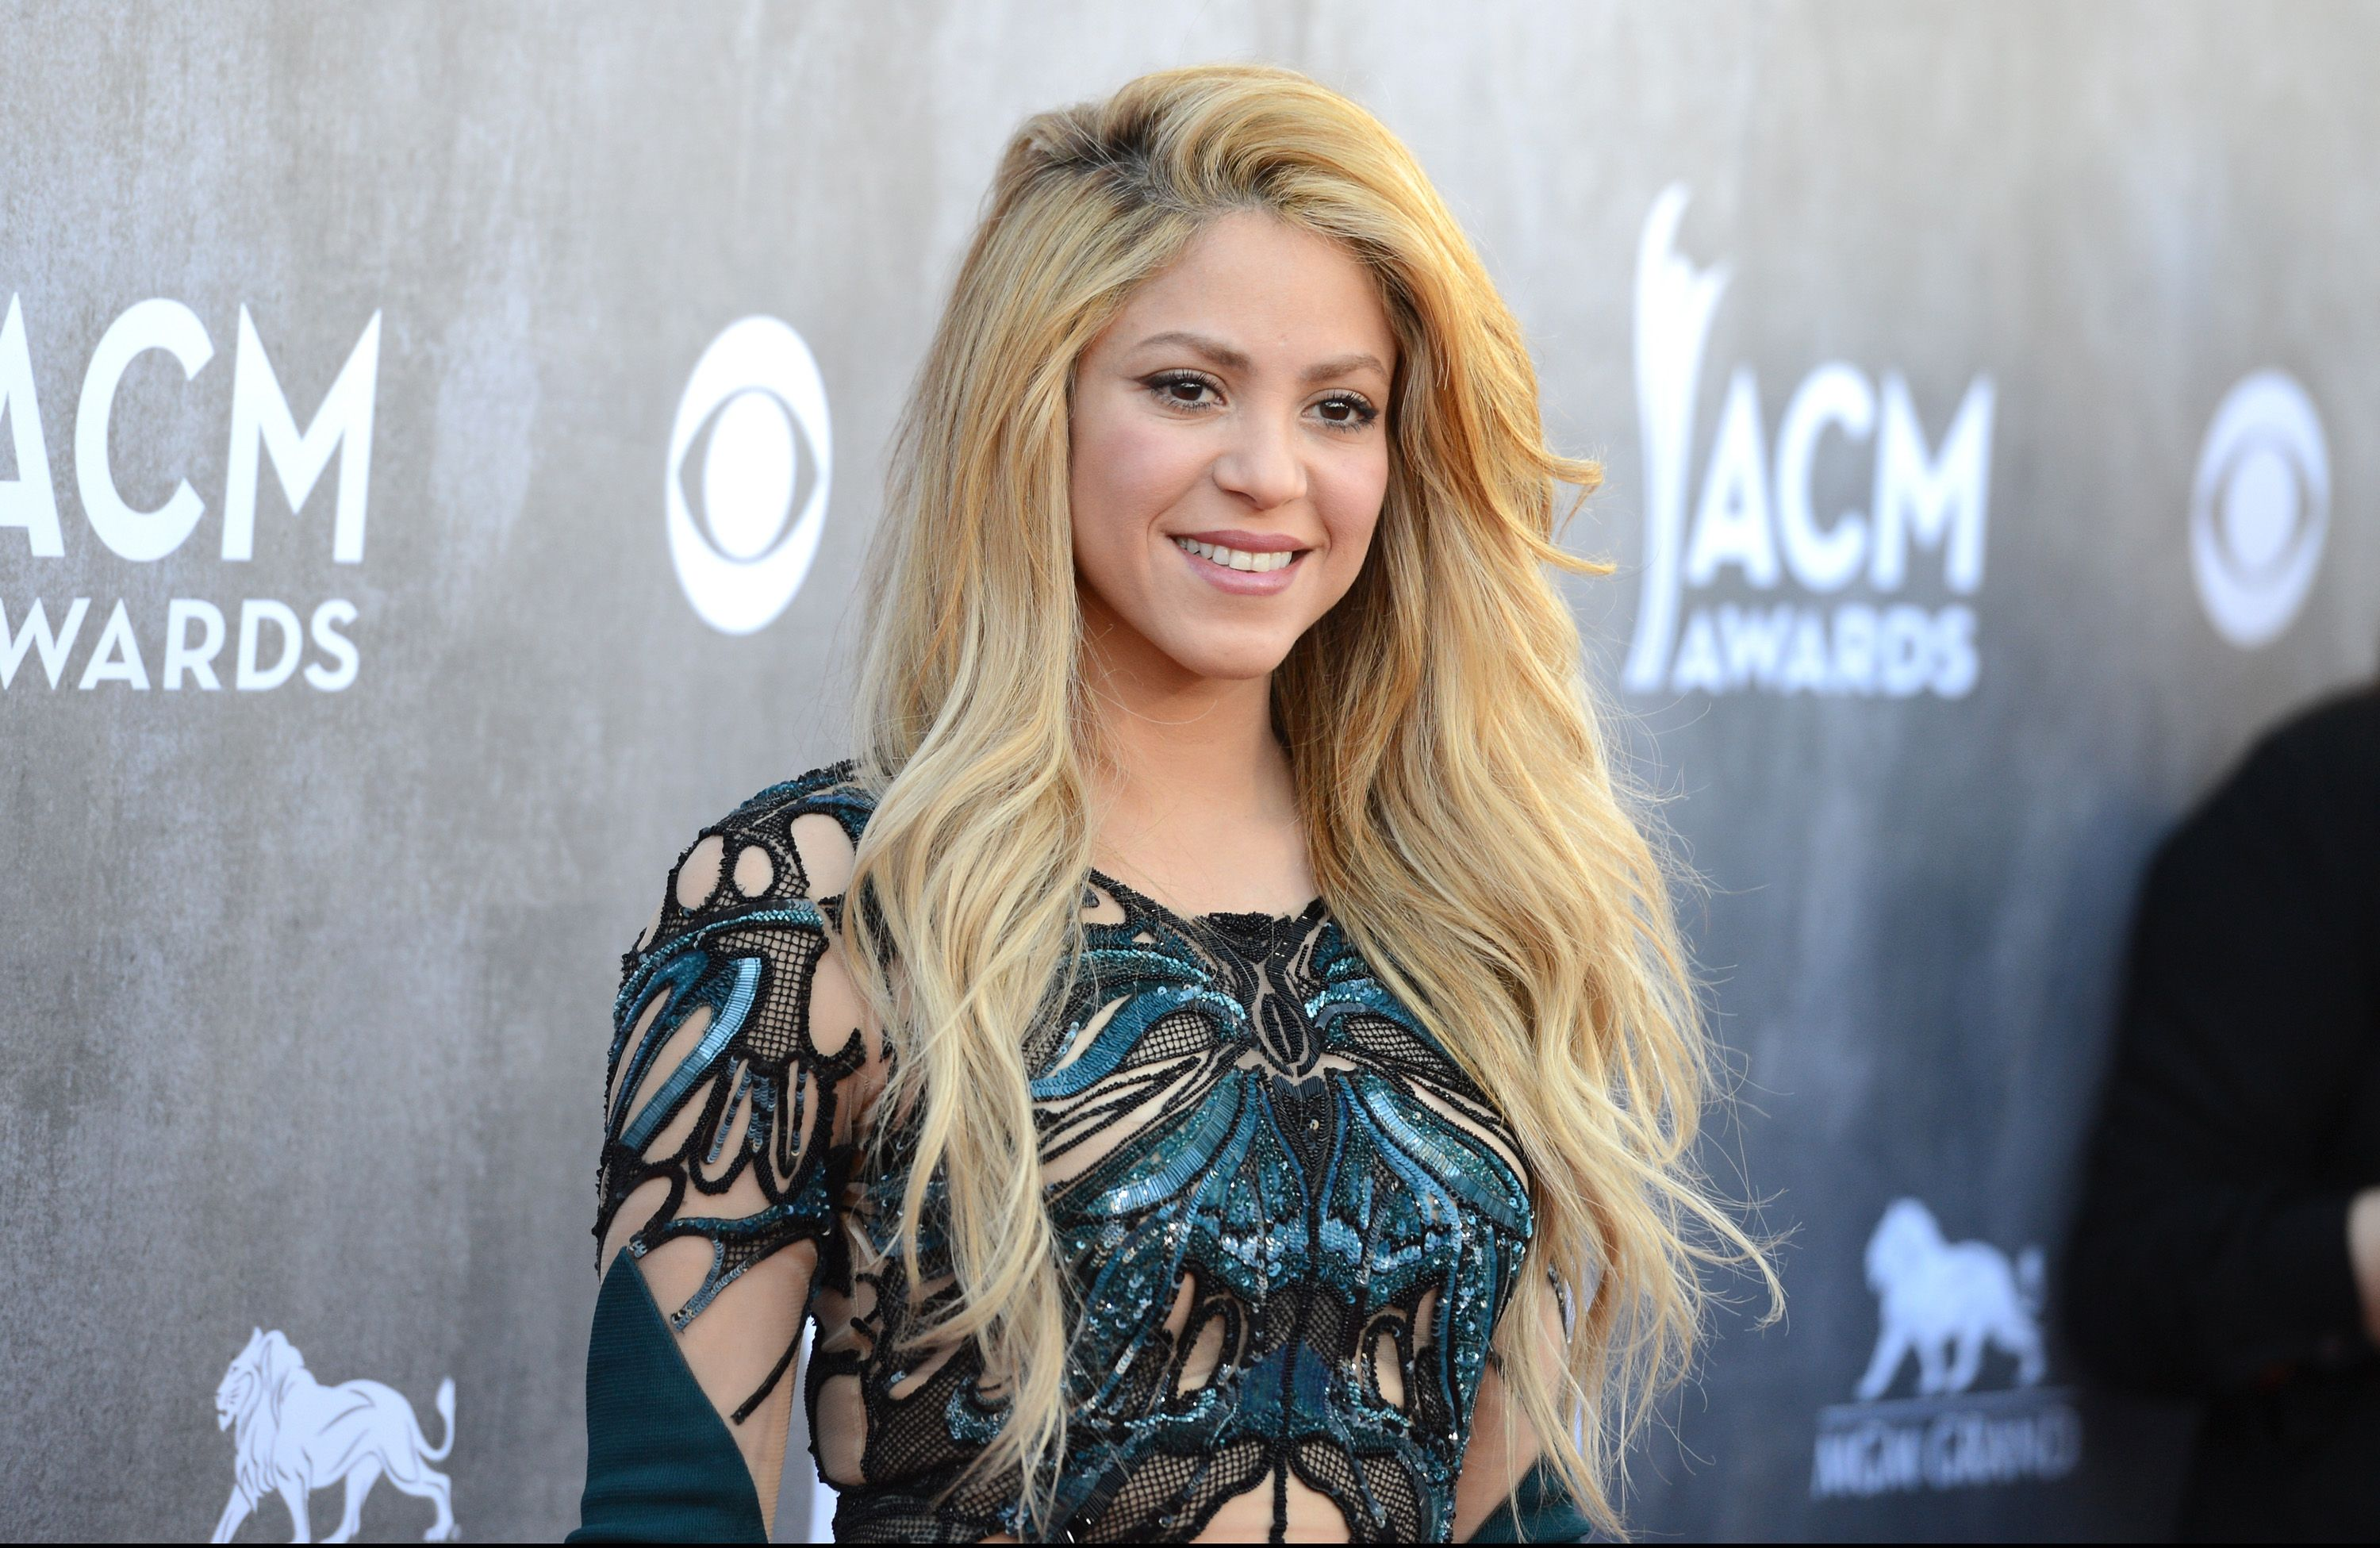 Shakira at the 49th Annual Academy Of Country Music Awards at the MGM Grand Garden Arena on April 6, 2014, in Las Vegas, Nevada | Photo: Jason Merritt/Getty Images